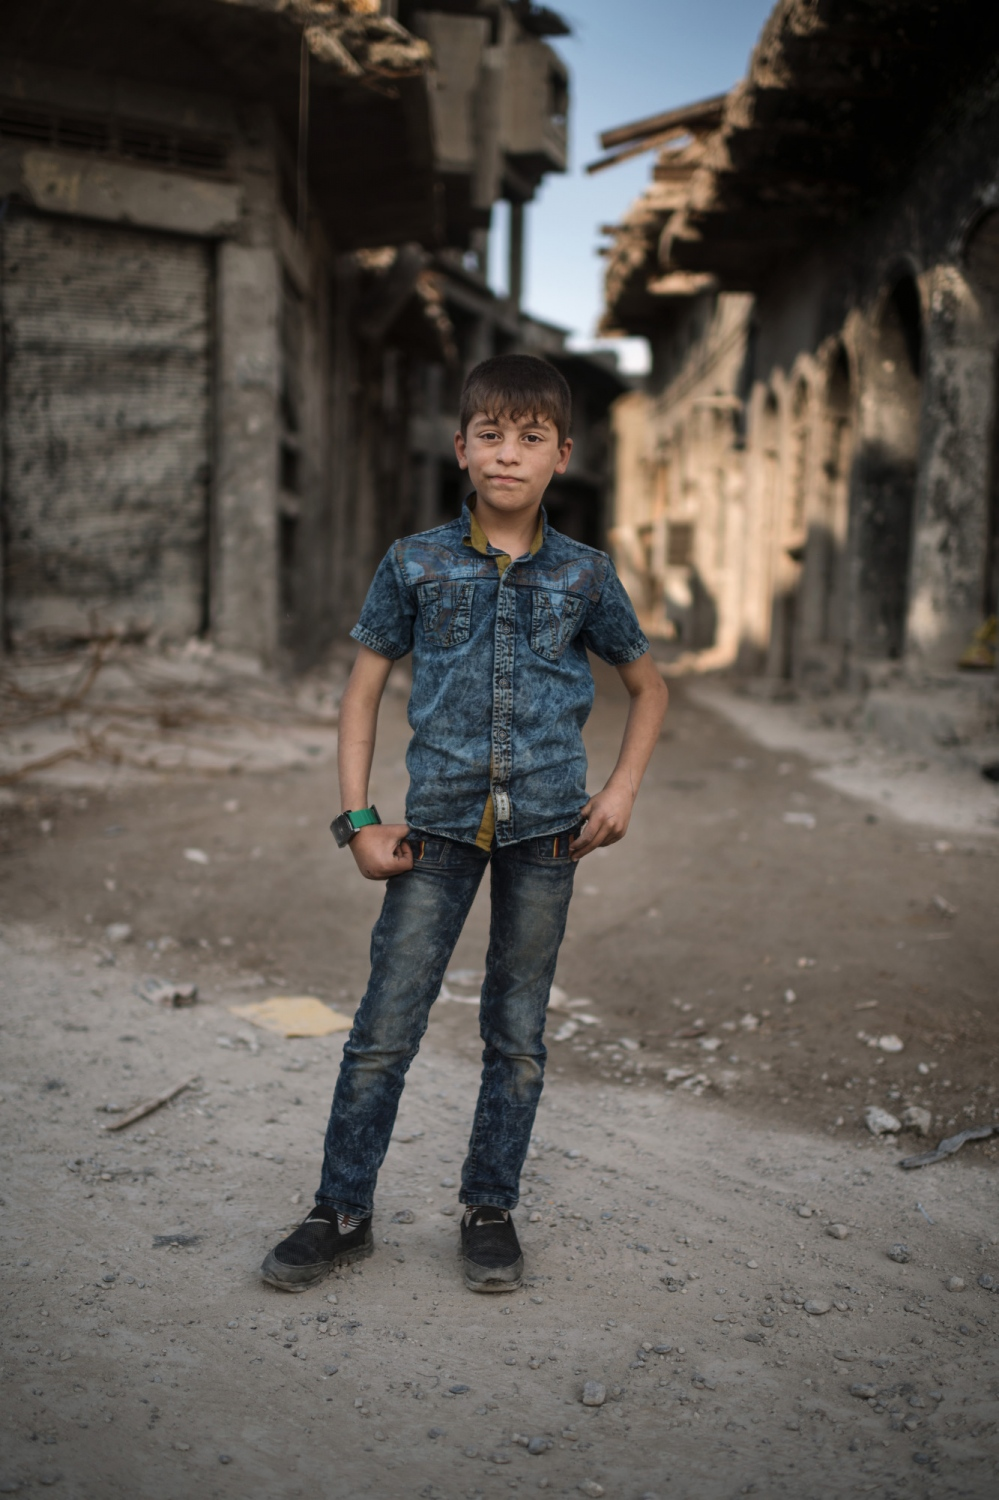 MOSUL 20180414 Mohammed Hareth, 12, lives in the eastern part of Mosul with his father, mother and four siblings. His father is a civil servant ut out of a job right now. What is your favourite thing? My bicycle and my books. What do you like to do in your spare time? Play soccer. What do you hate most of all? Daesh. What do you want do when you grow up? Become self employed. What are your dreams? A house. Why? To live there, I want a bigger house. Photo: Vilhelm Stokstad / Kontinent